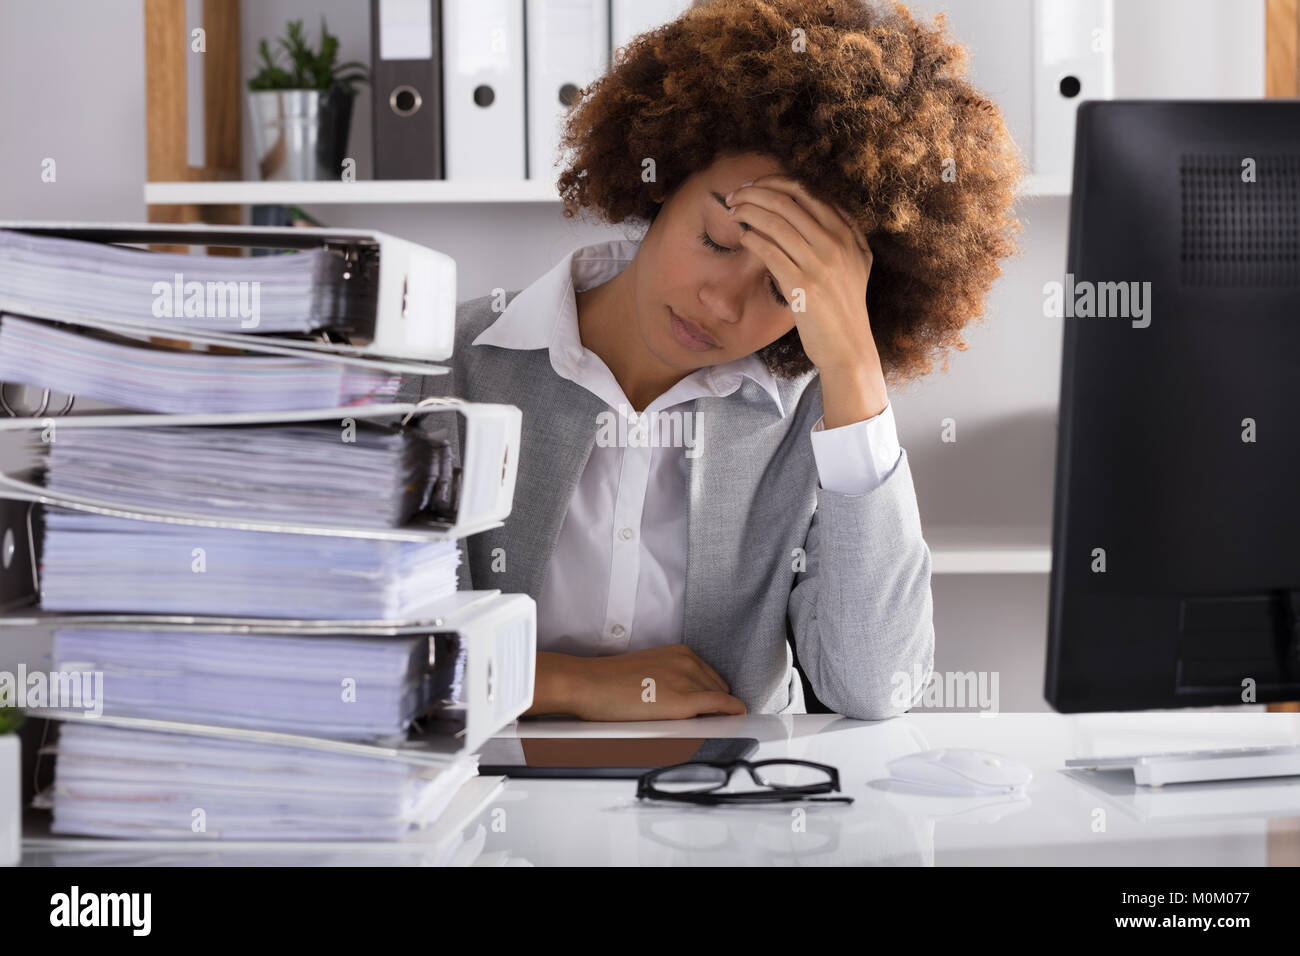 African American Stress Businesswoman Sitting in Office avec des dossiers empilés Photo Stock